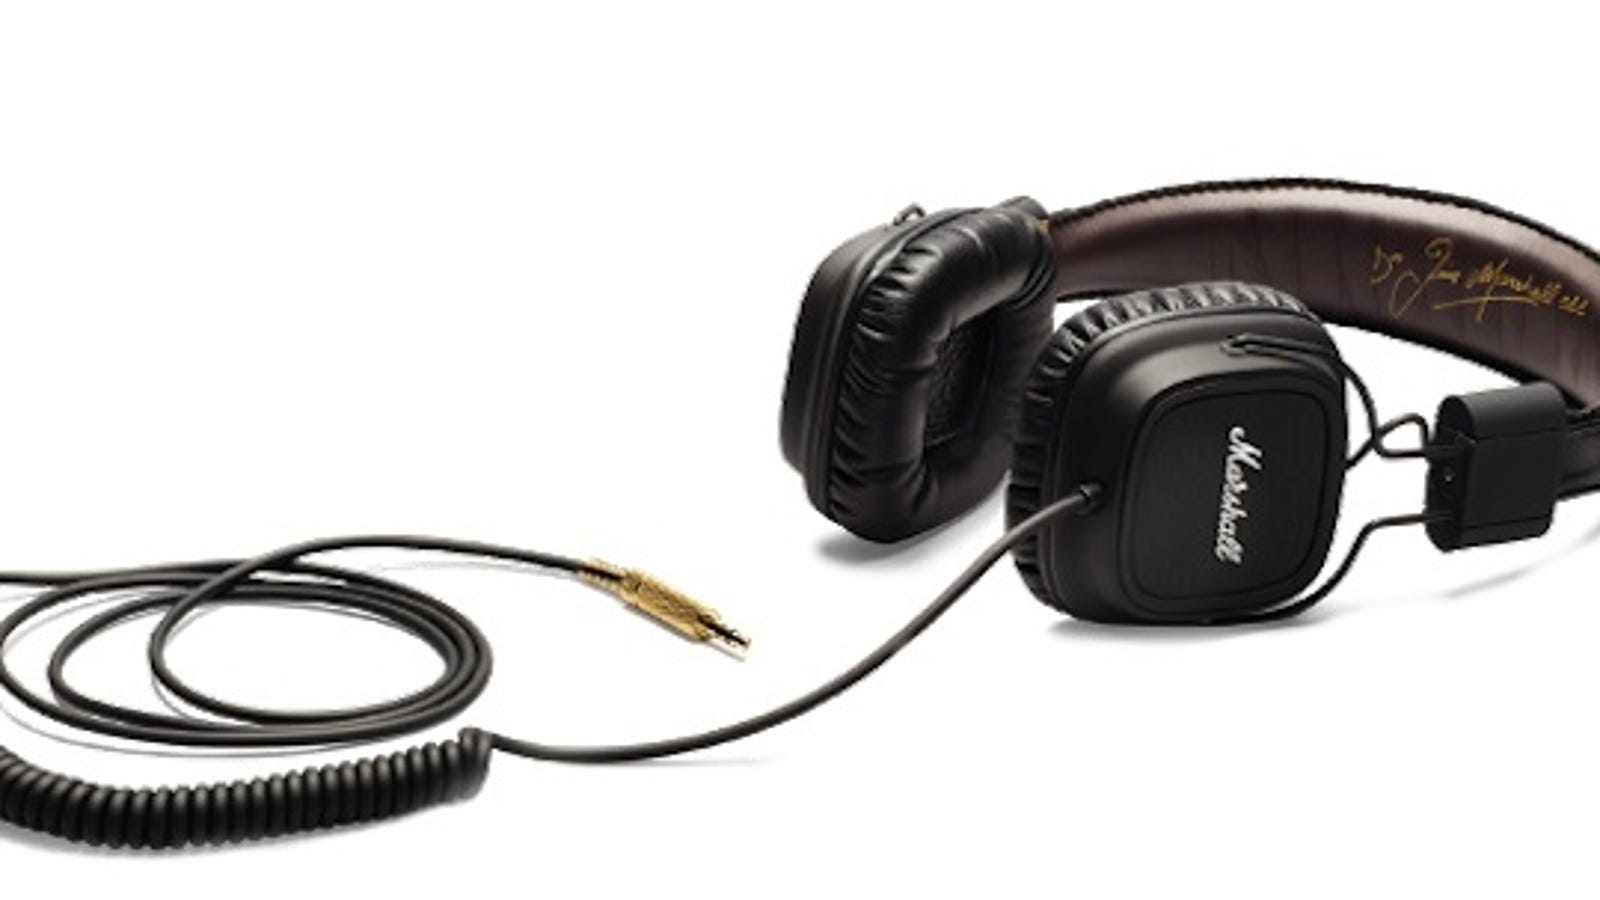 tree branch headphone splitter - Marshall's Headphones Are Handsome as Hell, Big or Small